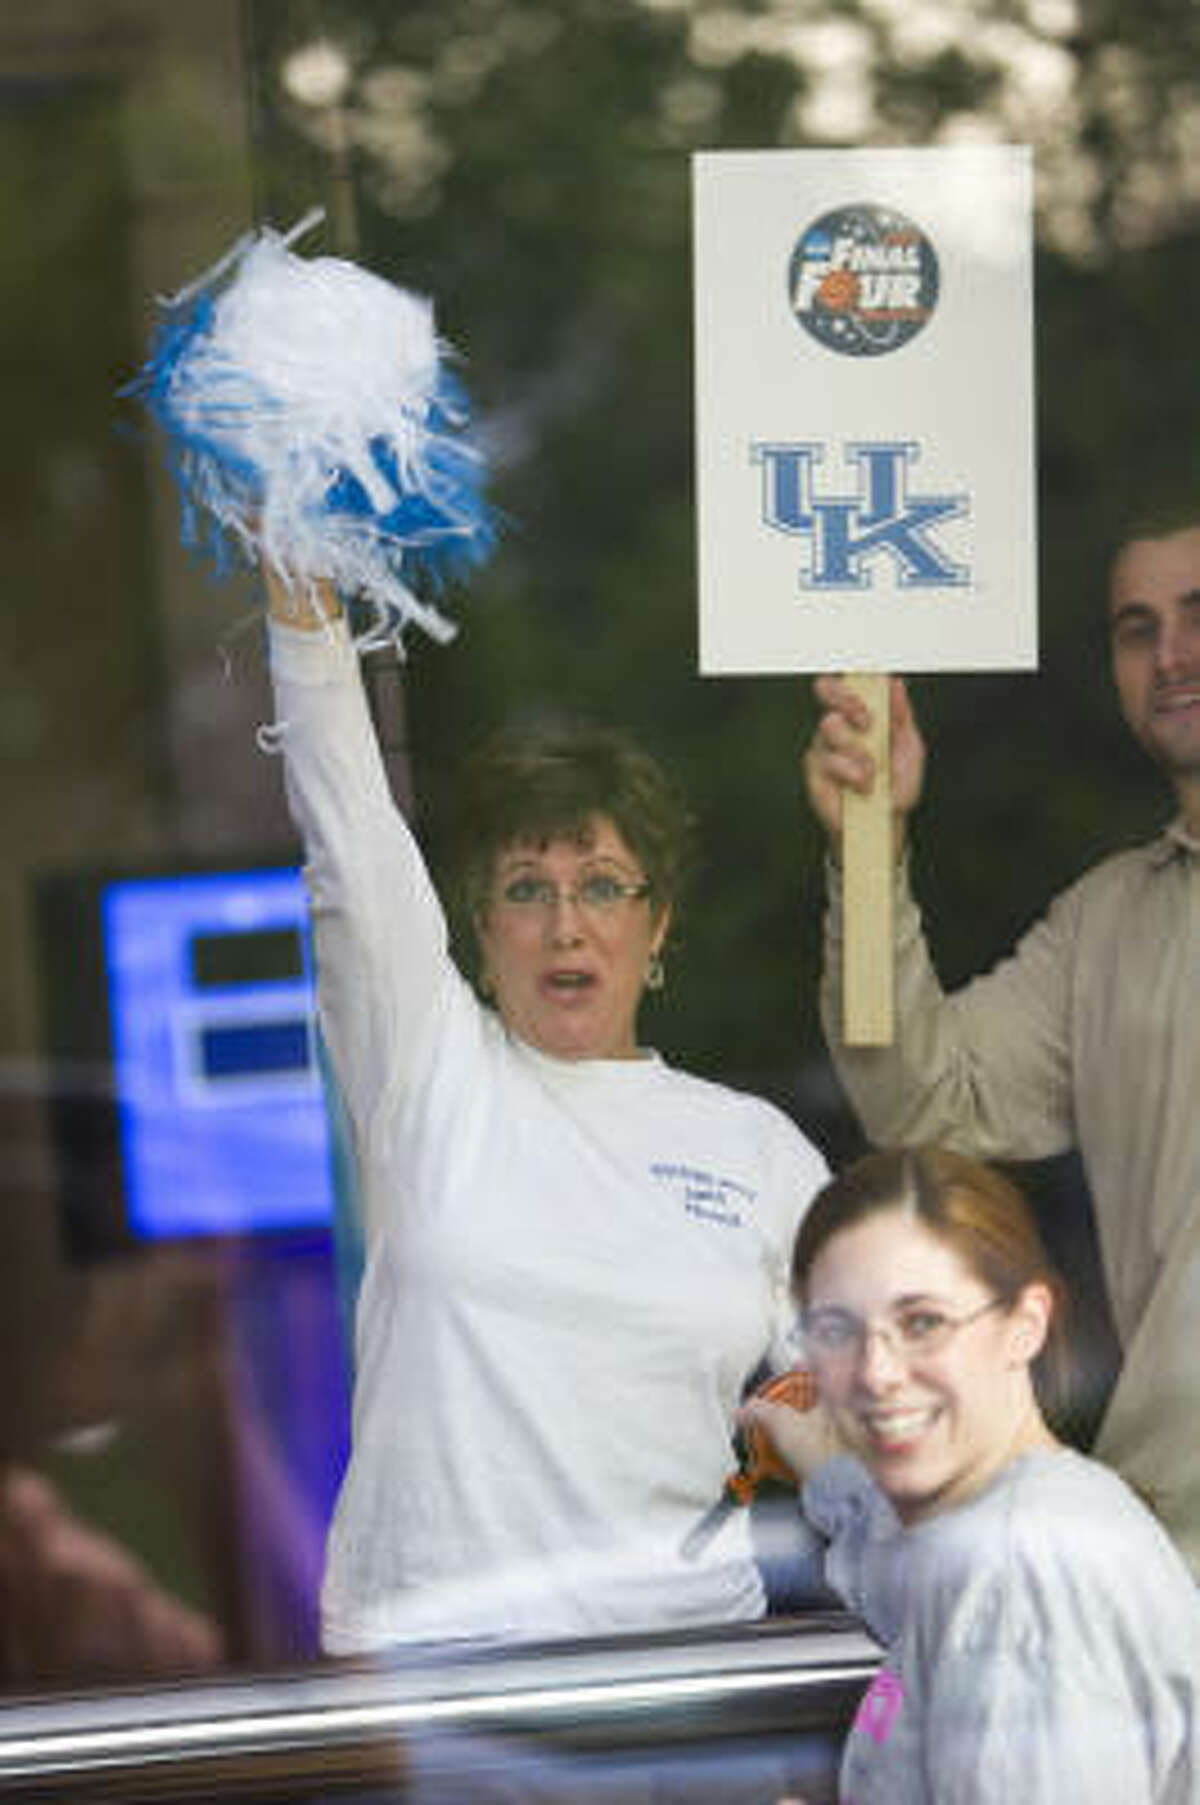 Kentucky basketball fans wait for the men's basketball team to arrive.